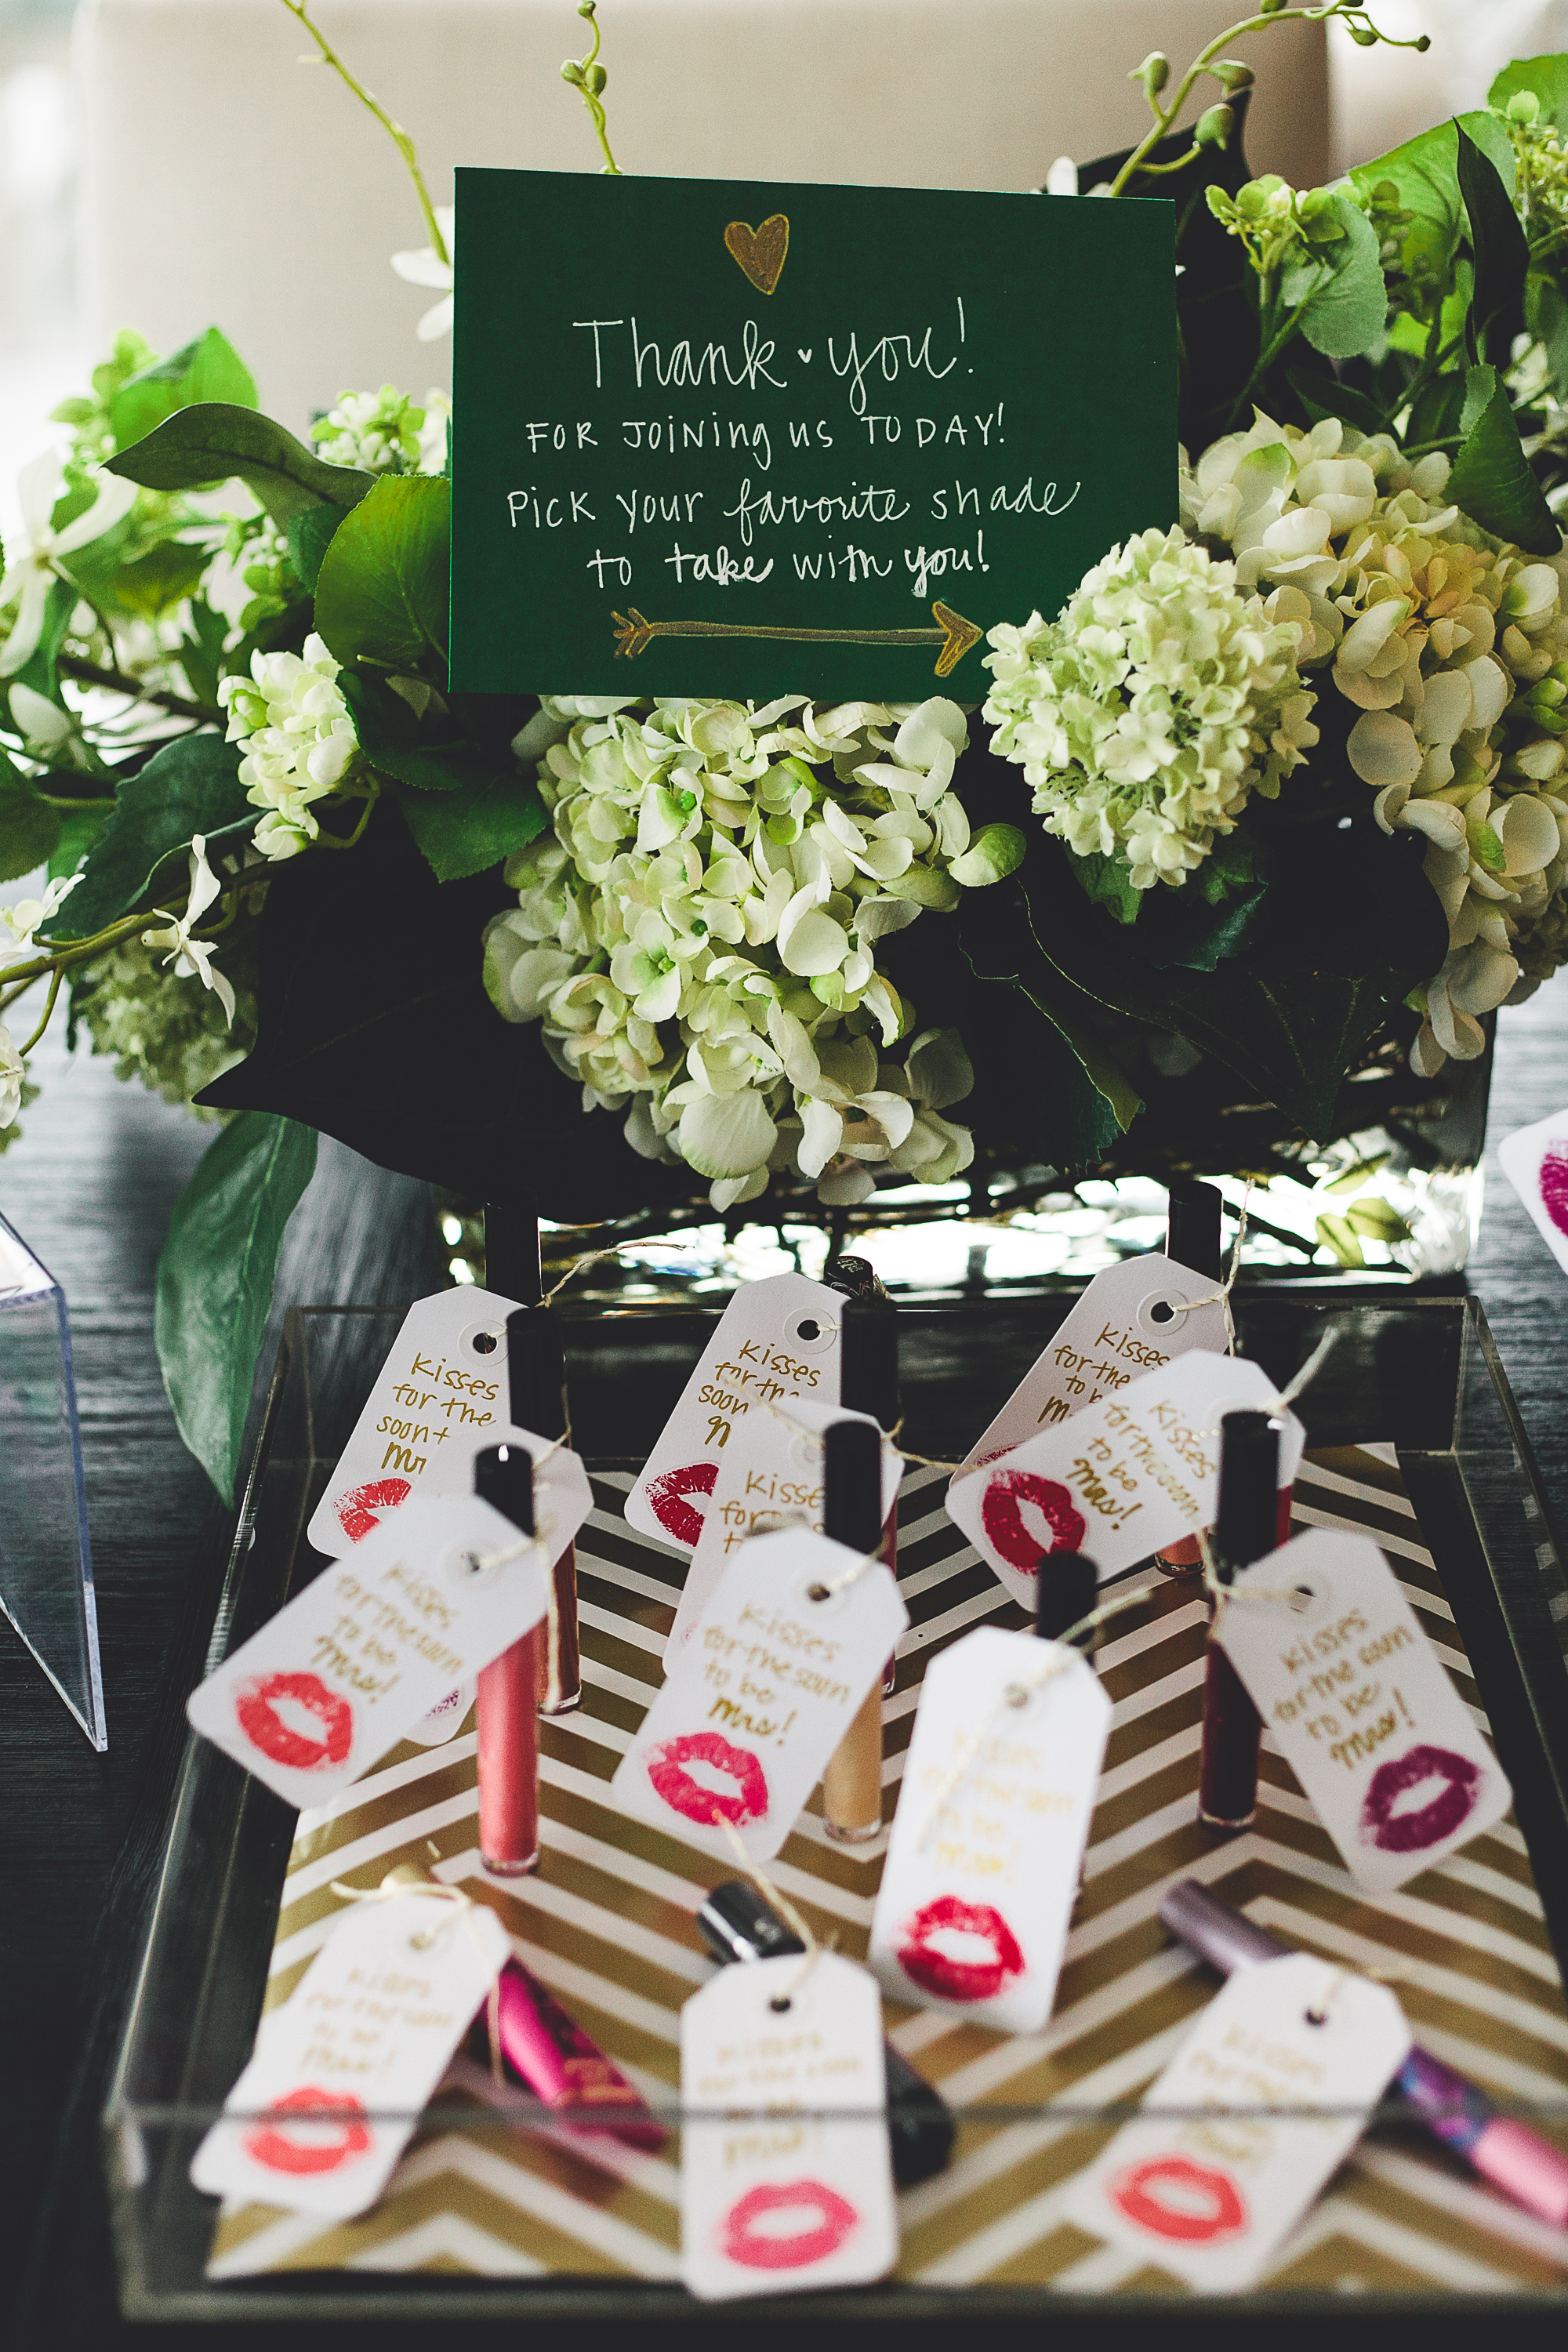 A Green & Gold Favorite Things Bridal Shower